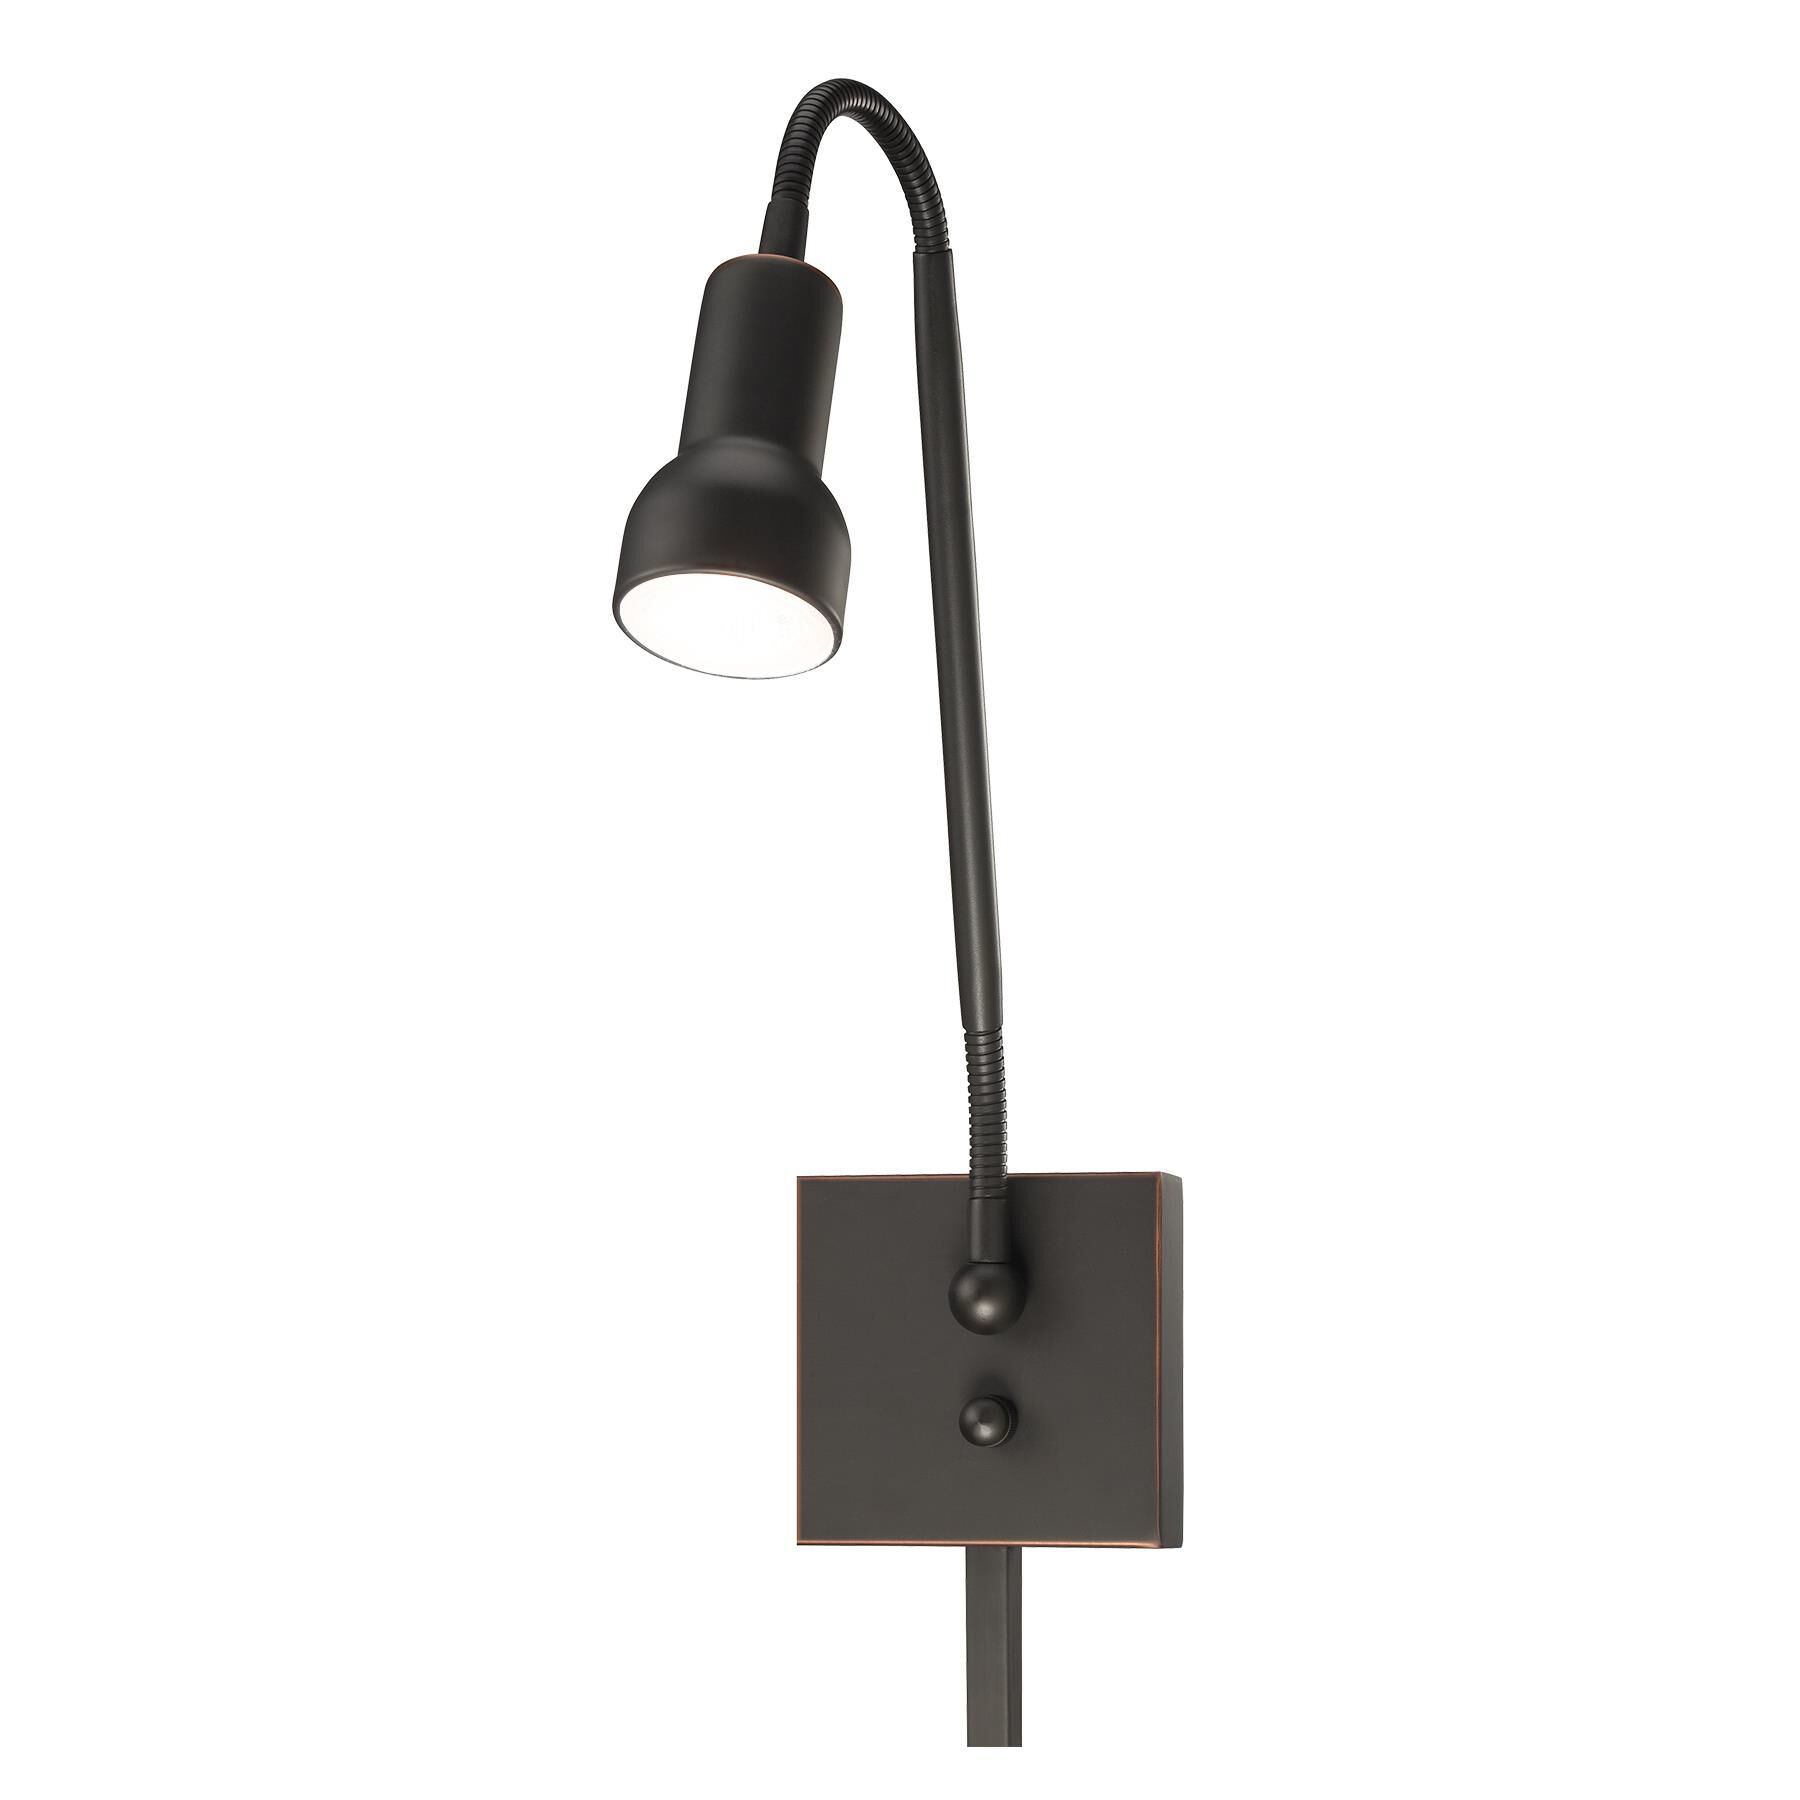 Kovacs Save Your Marriage Led Wall Swing Lamp Save Your Marriage - P4401-467-l - Modern Contemporary